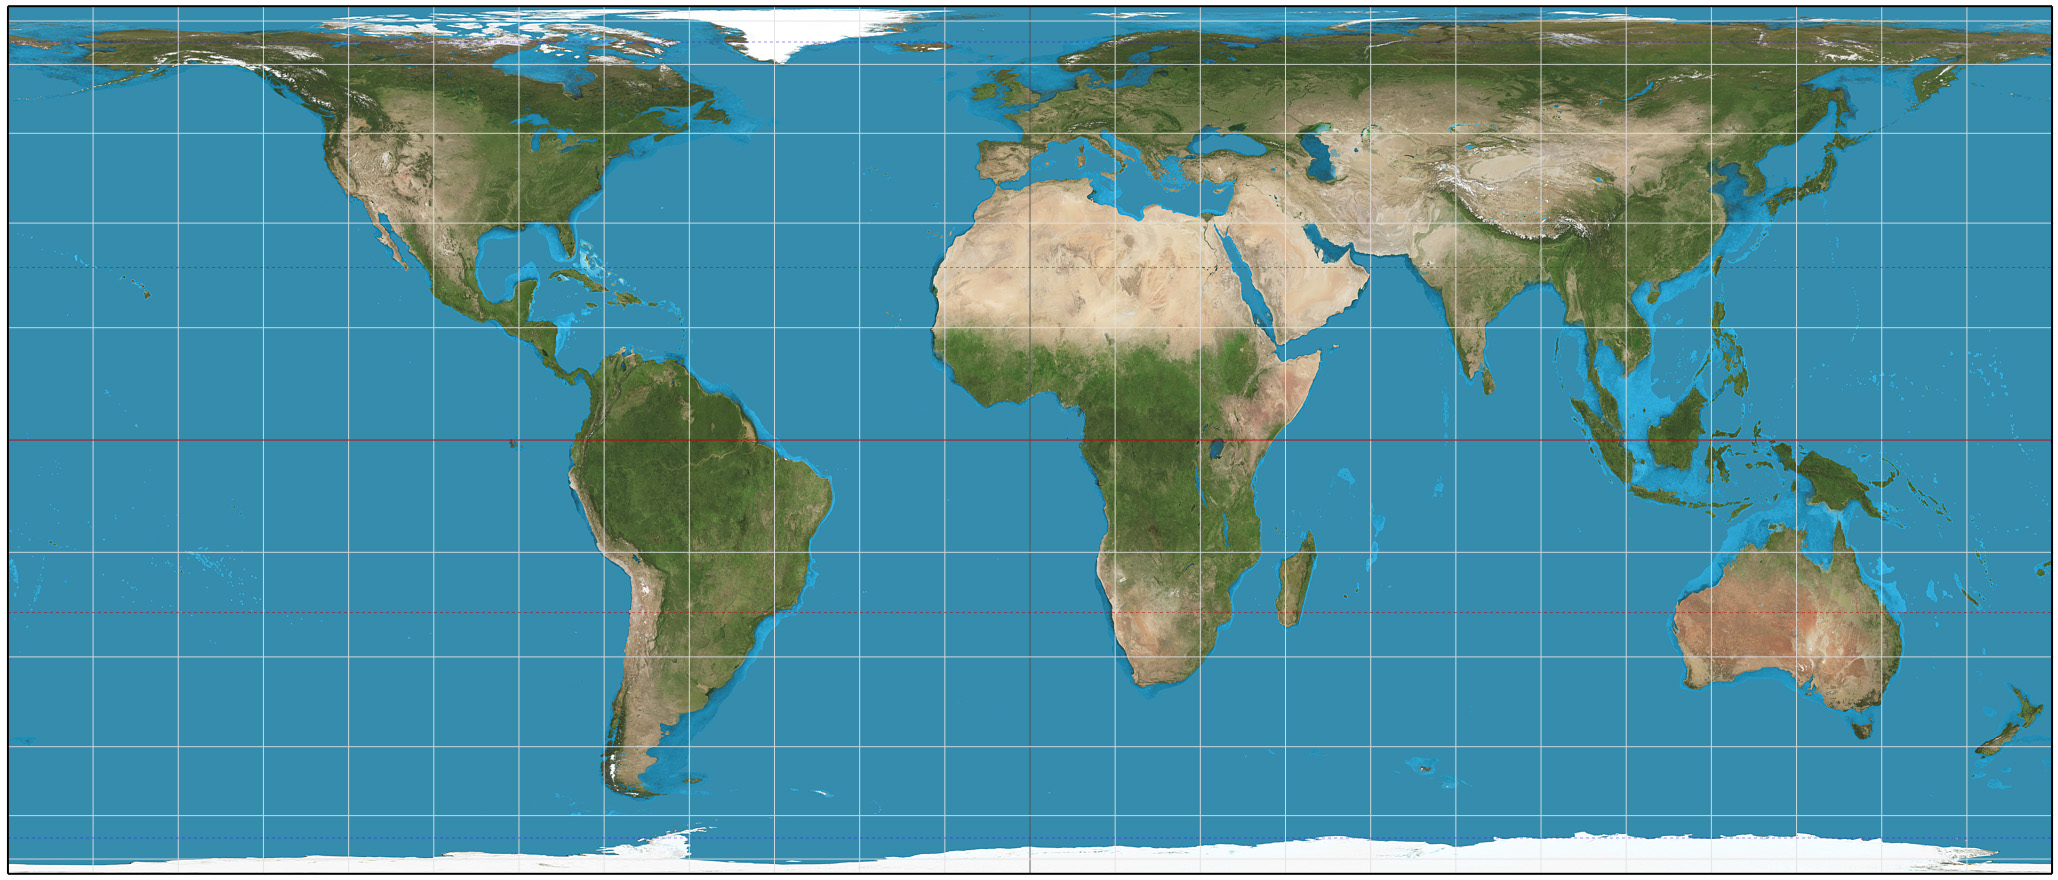 Behrmann projection - Wikipedia on mollweide projection, miller cylindrical projection, dymaxion map, equirectangular projection, mercator projection, polyconic projection, white map, sinusoidal projection, goode homolosine projection, robinson projection, stereographic projection, miller map, azimuthal equidistant projection, schneider map, winkel tripel projection, thomas map, brown map, marshall map, gaul map, paul map, peirce quincuncial projection, pierce map, map projection, cross map, gnomonic projection, transverse mercator projection, lambert conformal conic projection, van der grinten projection, albers equal-area conic projection, martin map, wolf map, cylindrical equal-area projection, gray map,